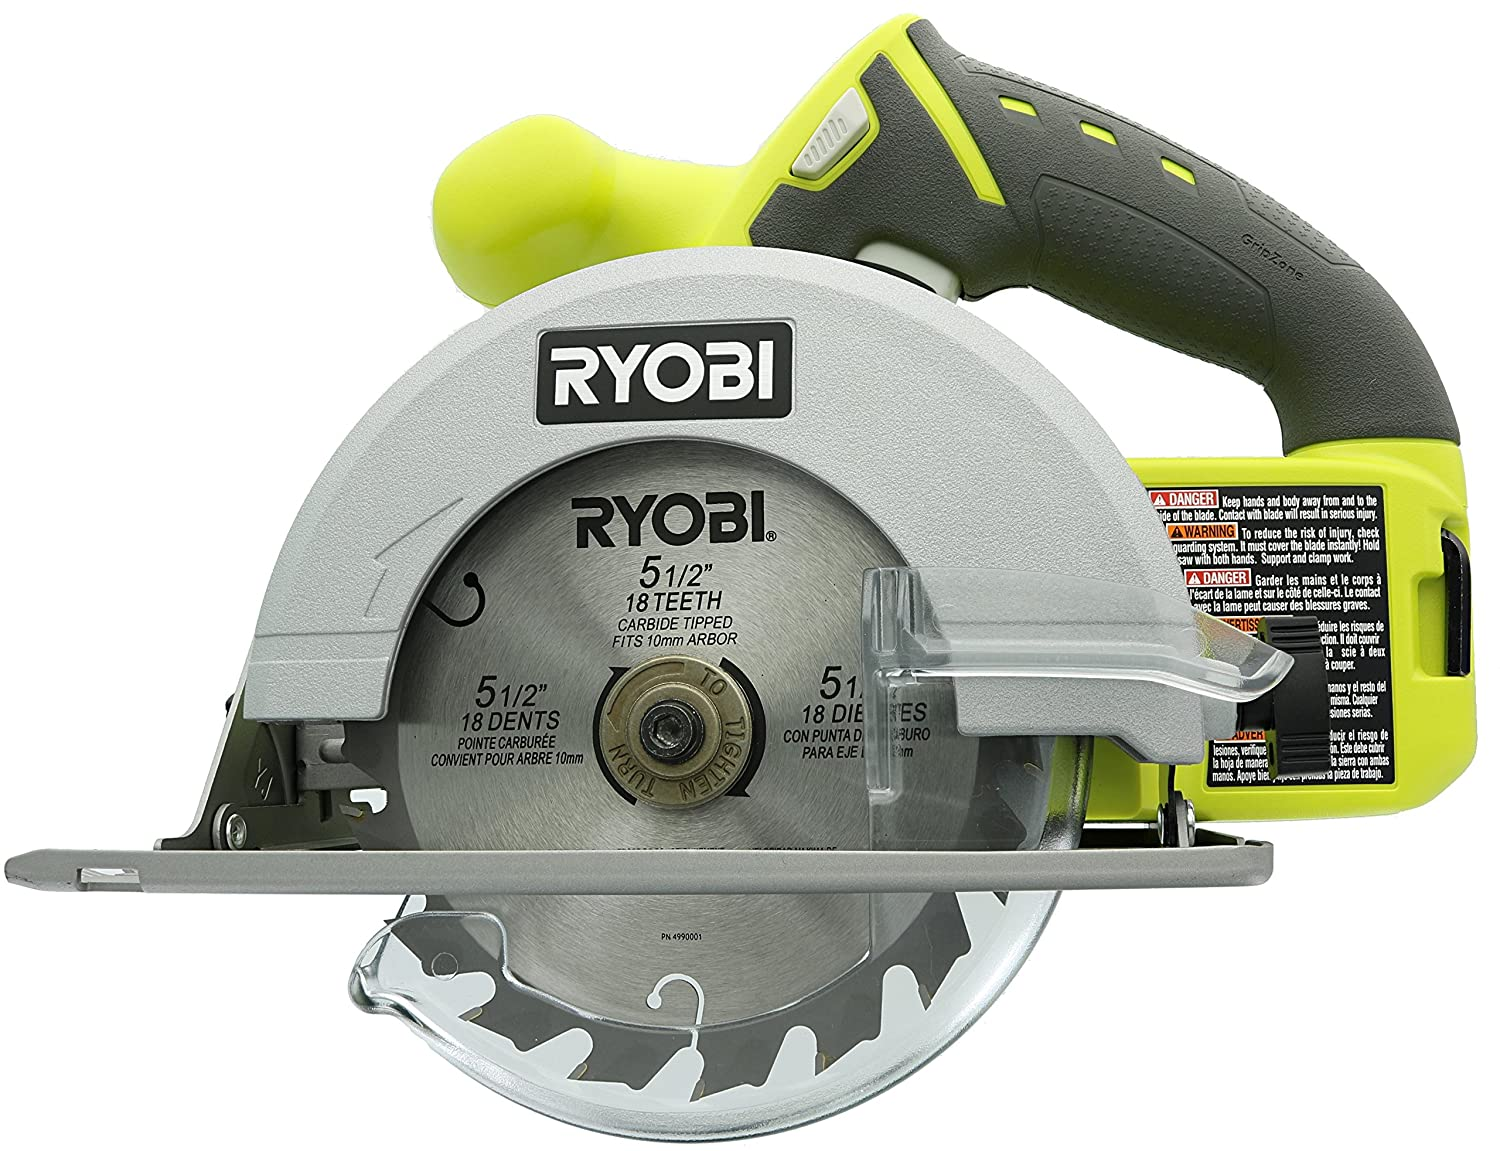 Ryobi p504g one 18 v lithium ion cordless 5 12 inch circular saw w ryobi p504g one 18 v lithium ion cordless 5 12 inch circular saw w carbide tip blade battery not included power tool only power circular saws keyboard keysfo Image collections